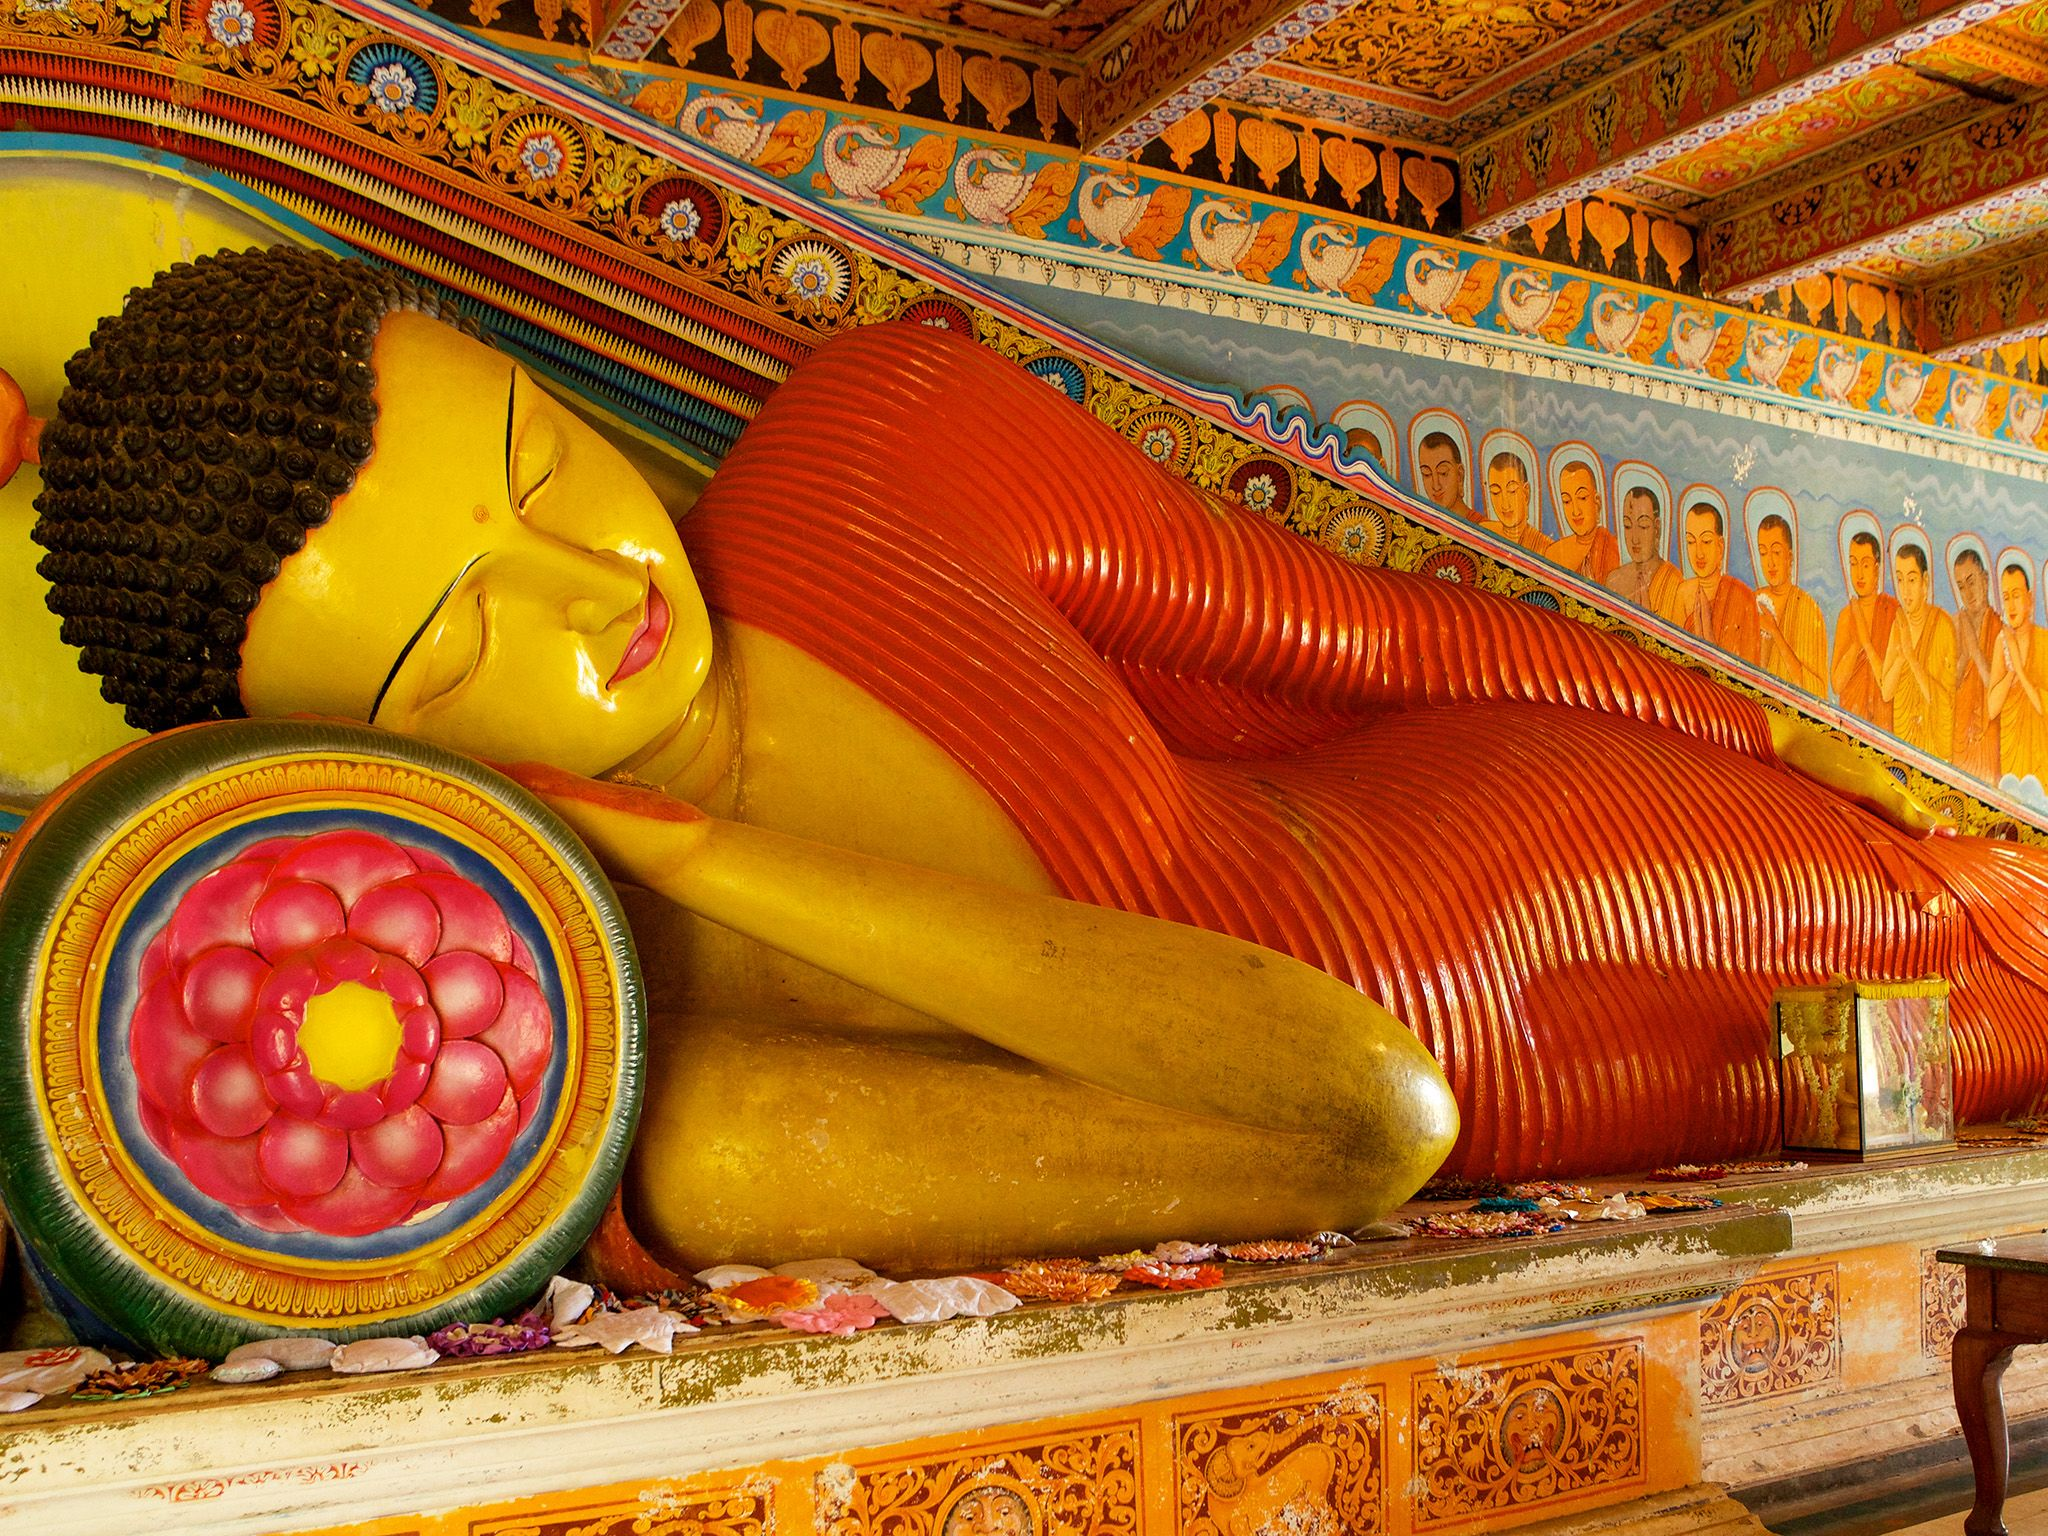 Sri Lanka A reclining Buddha in the colourfully decorated Isurumuniya Rock Temple at Anuradhapura... [Photo of the day - مارس 2015]